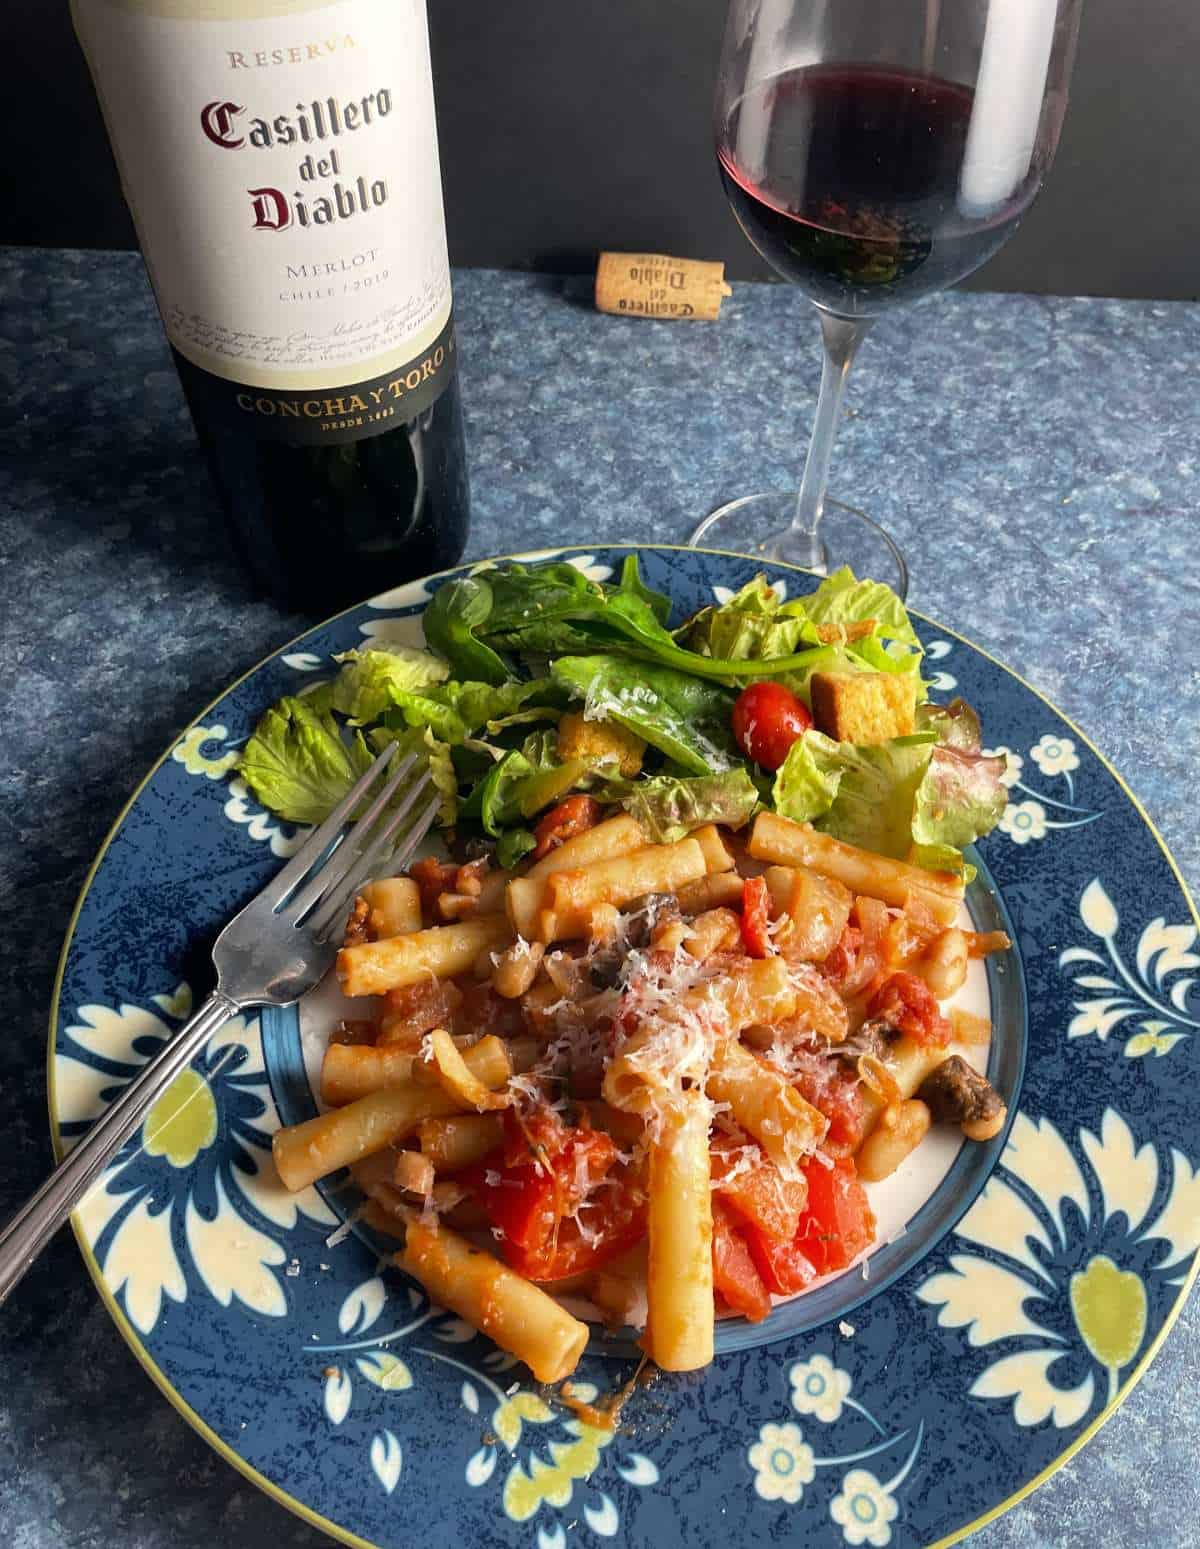 ziti pasta with tomato sauce and white beans, served with a side salad and a Merlot red wine.